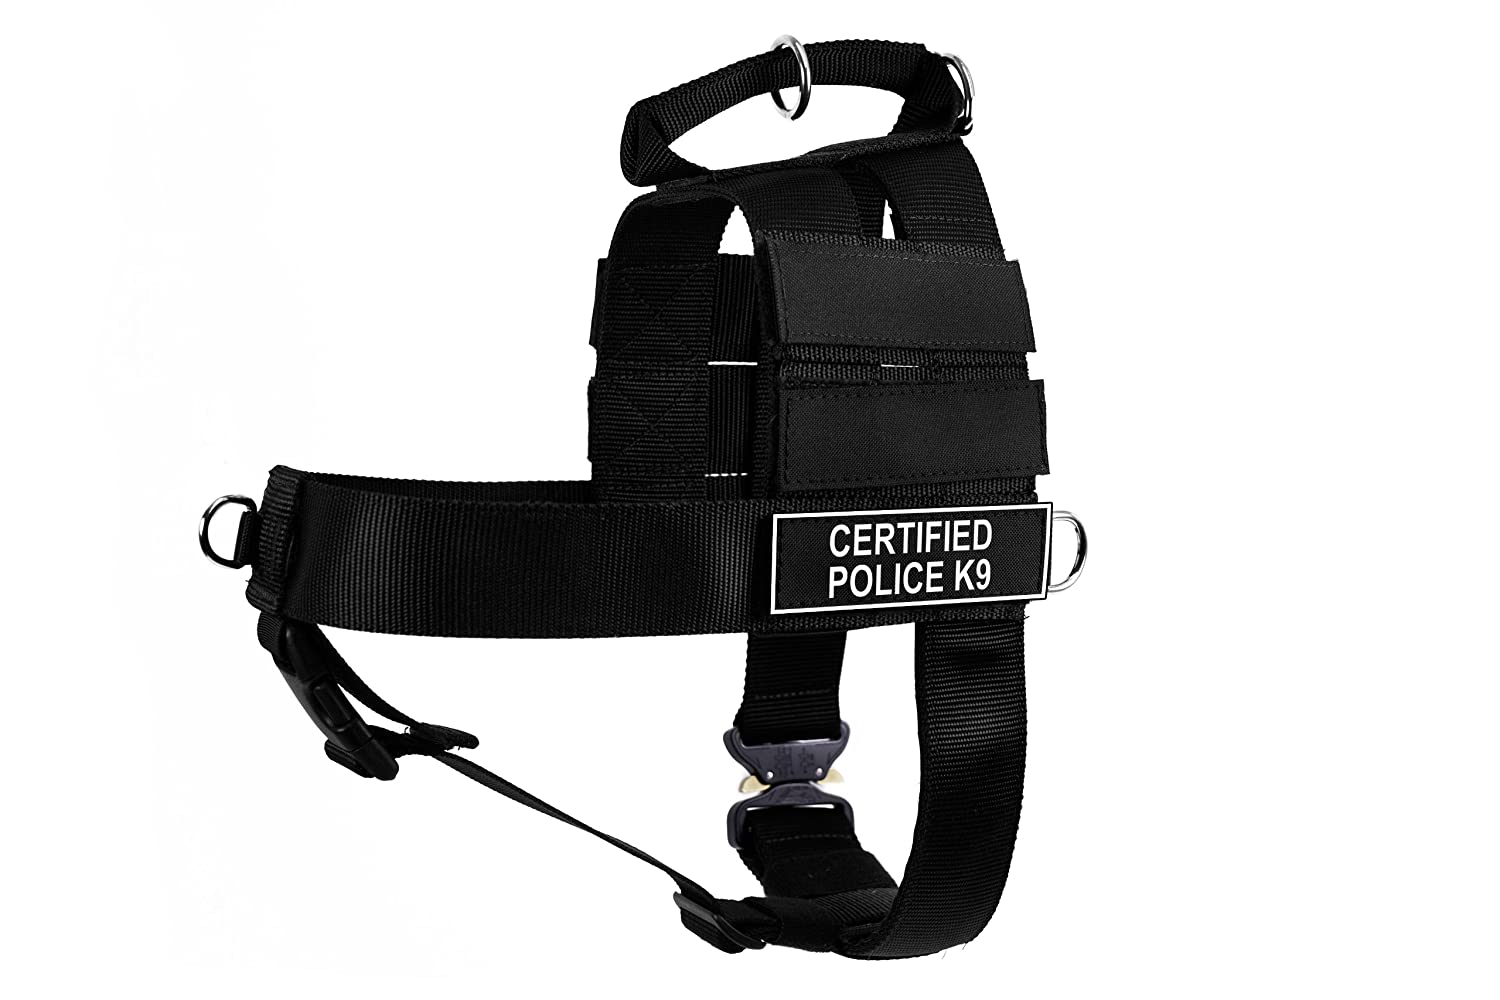 Dean & Tyler DT Cobra Certified Police K9 No Pull Harness, Small, Black